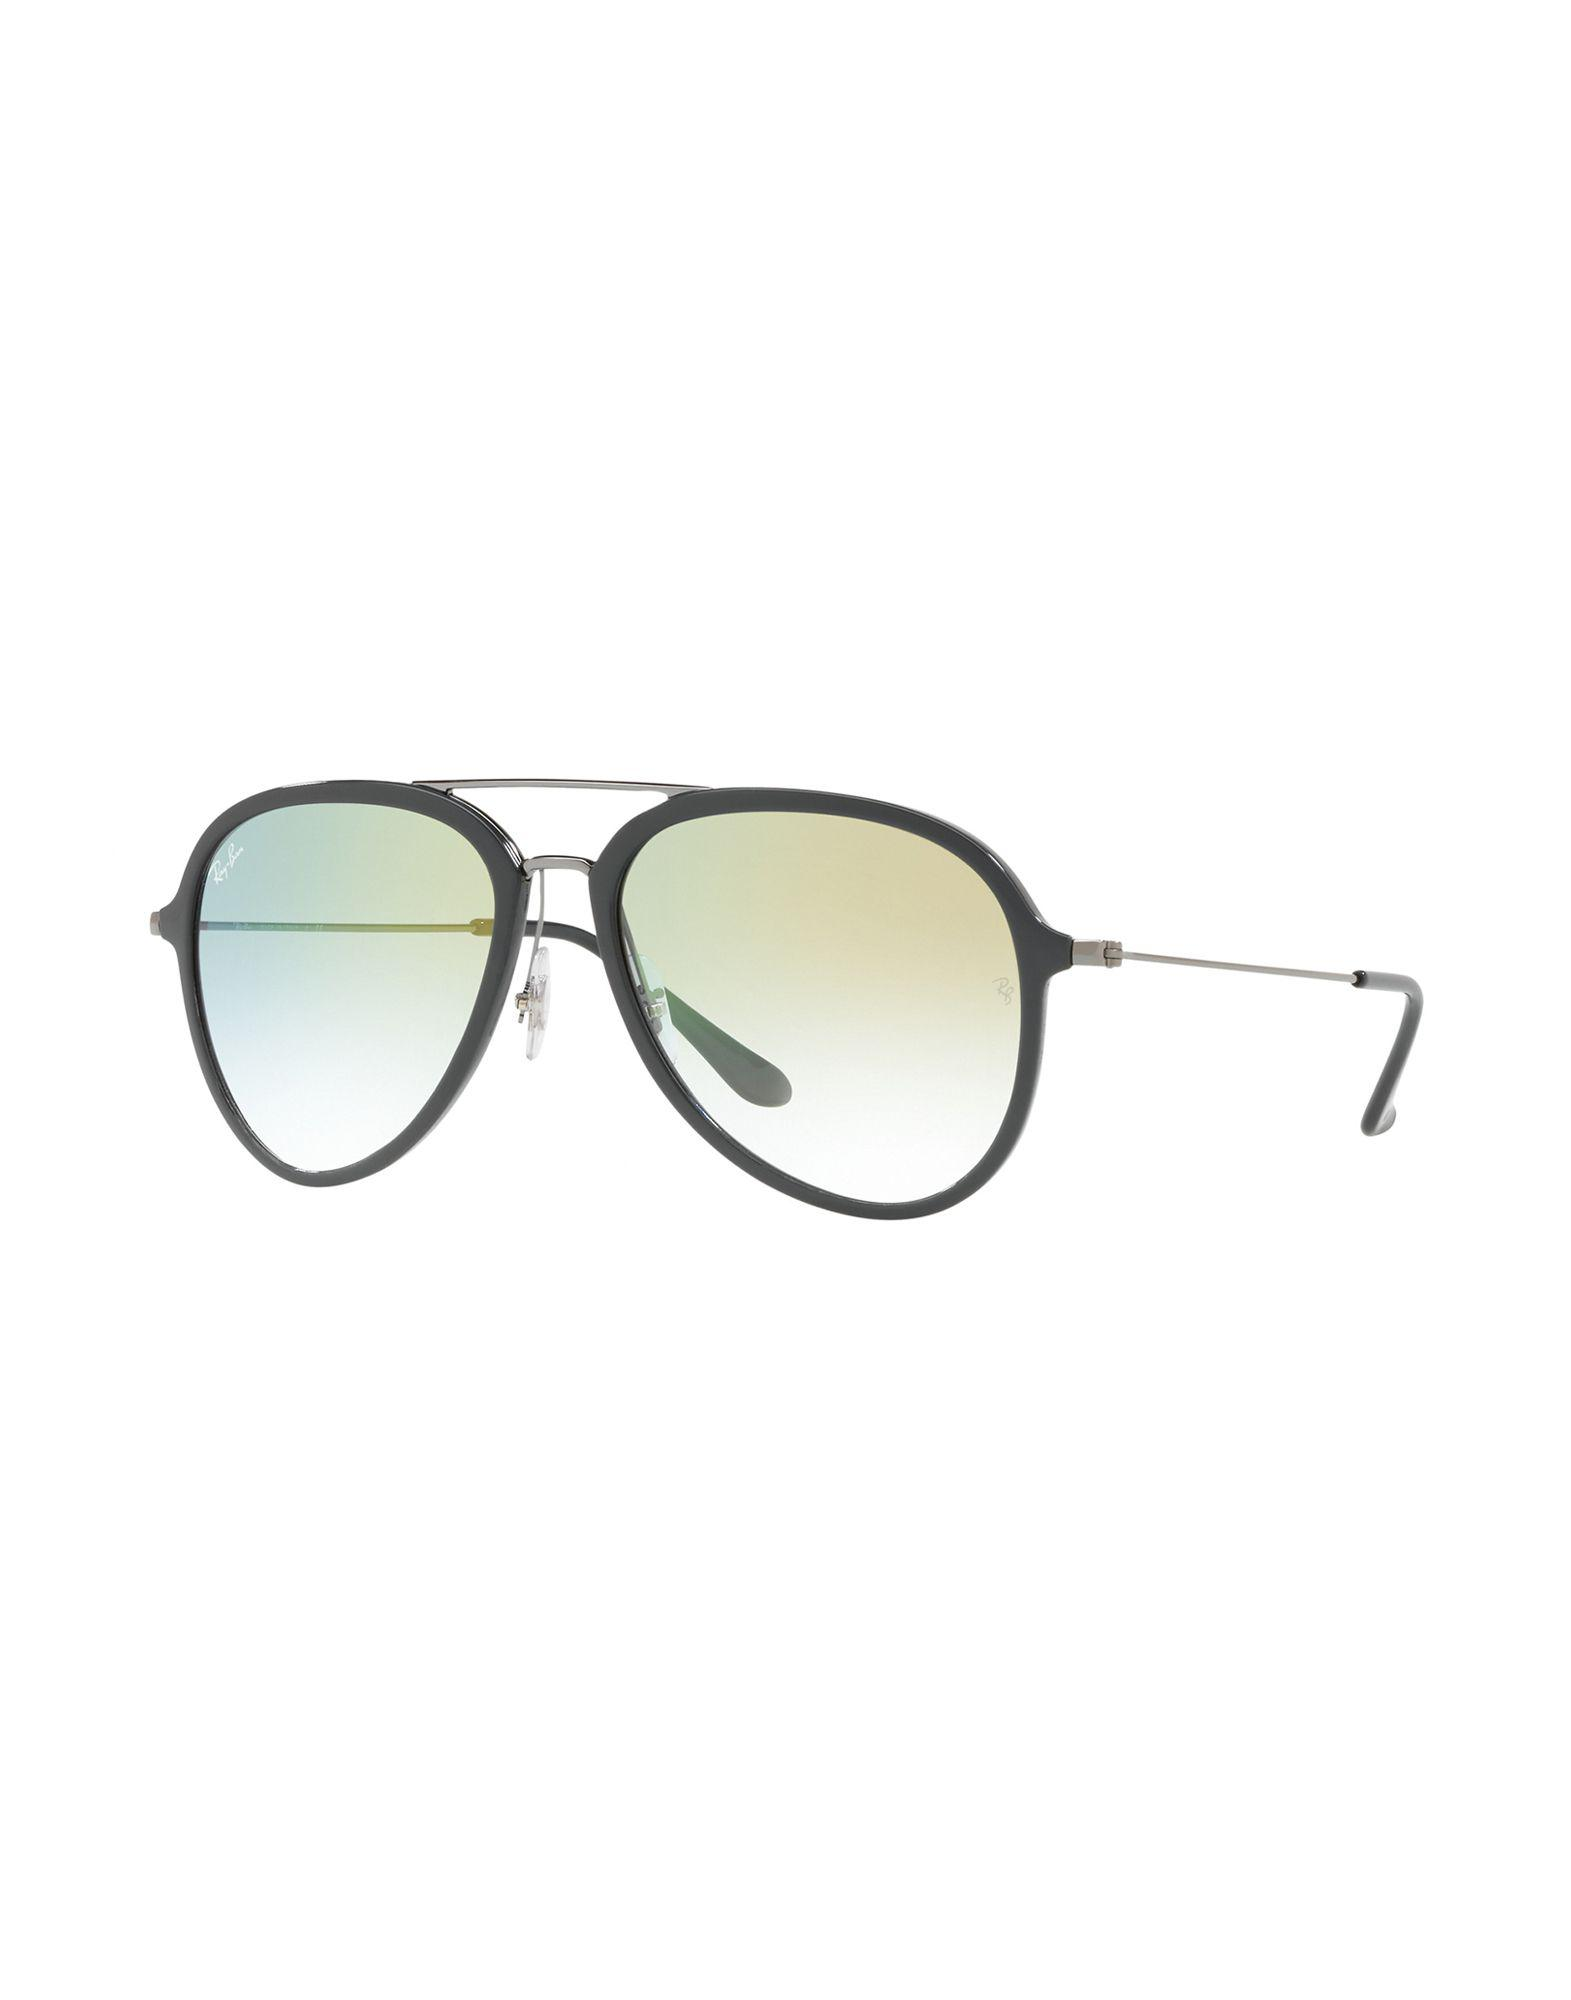 09b1f26be7 Ray-Ban Sunglasses in Green - Lyst